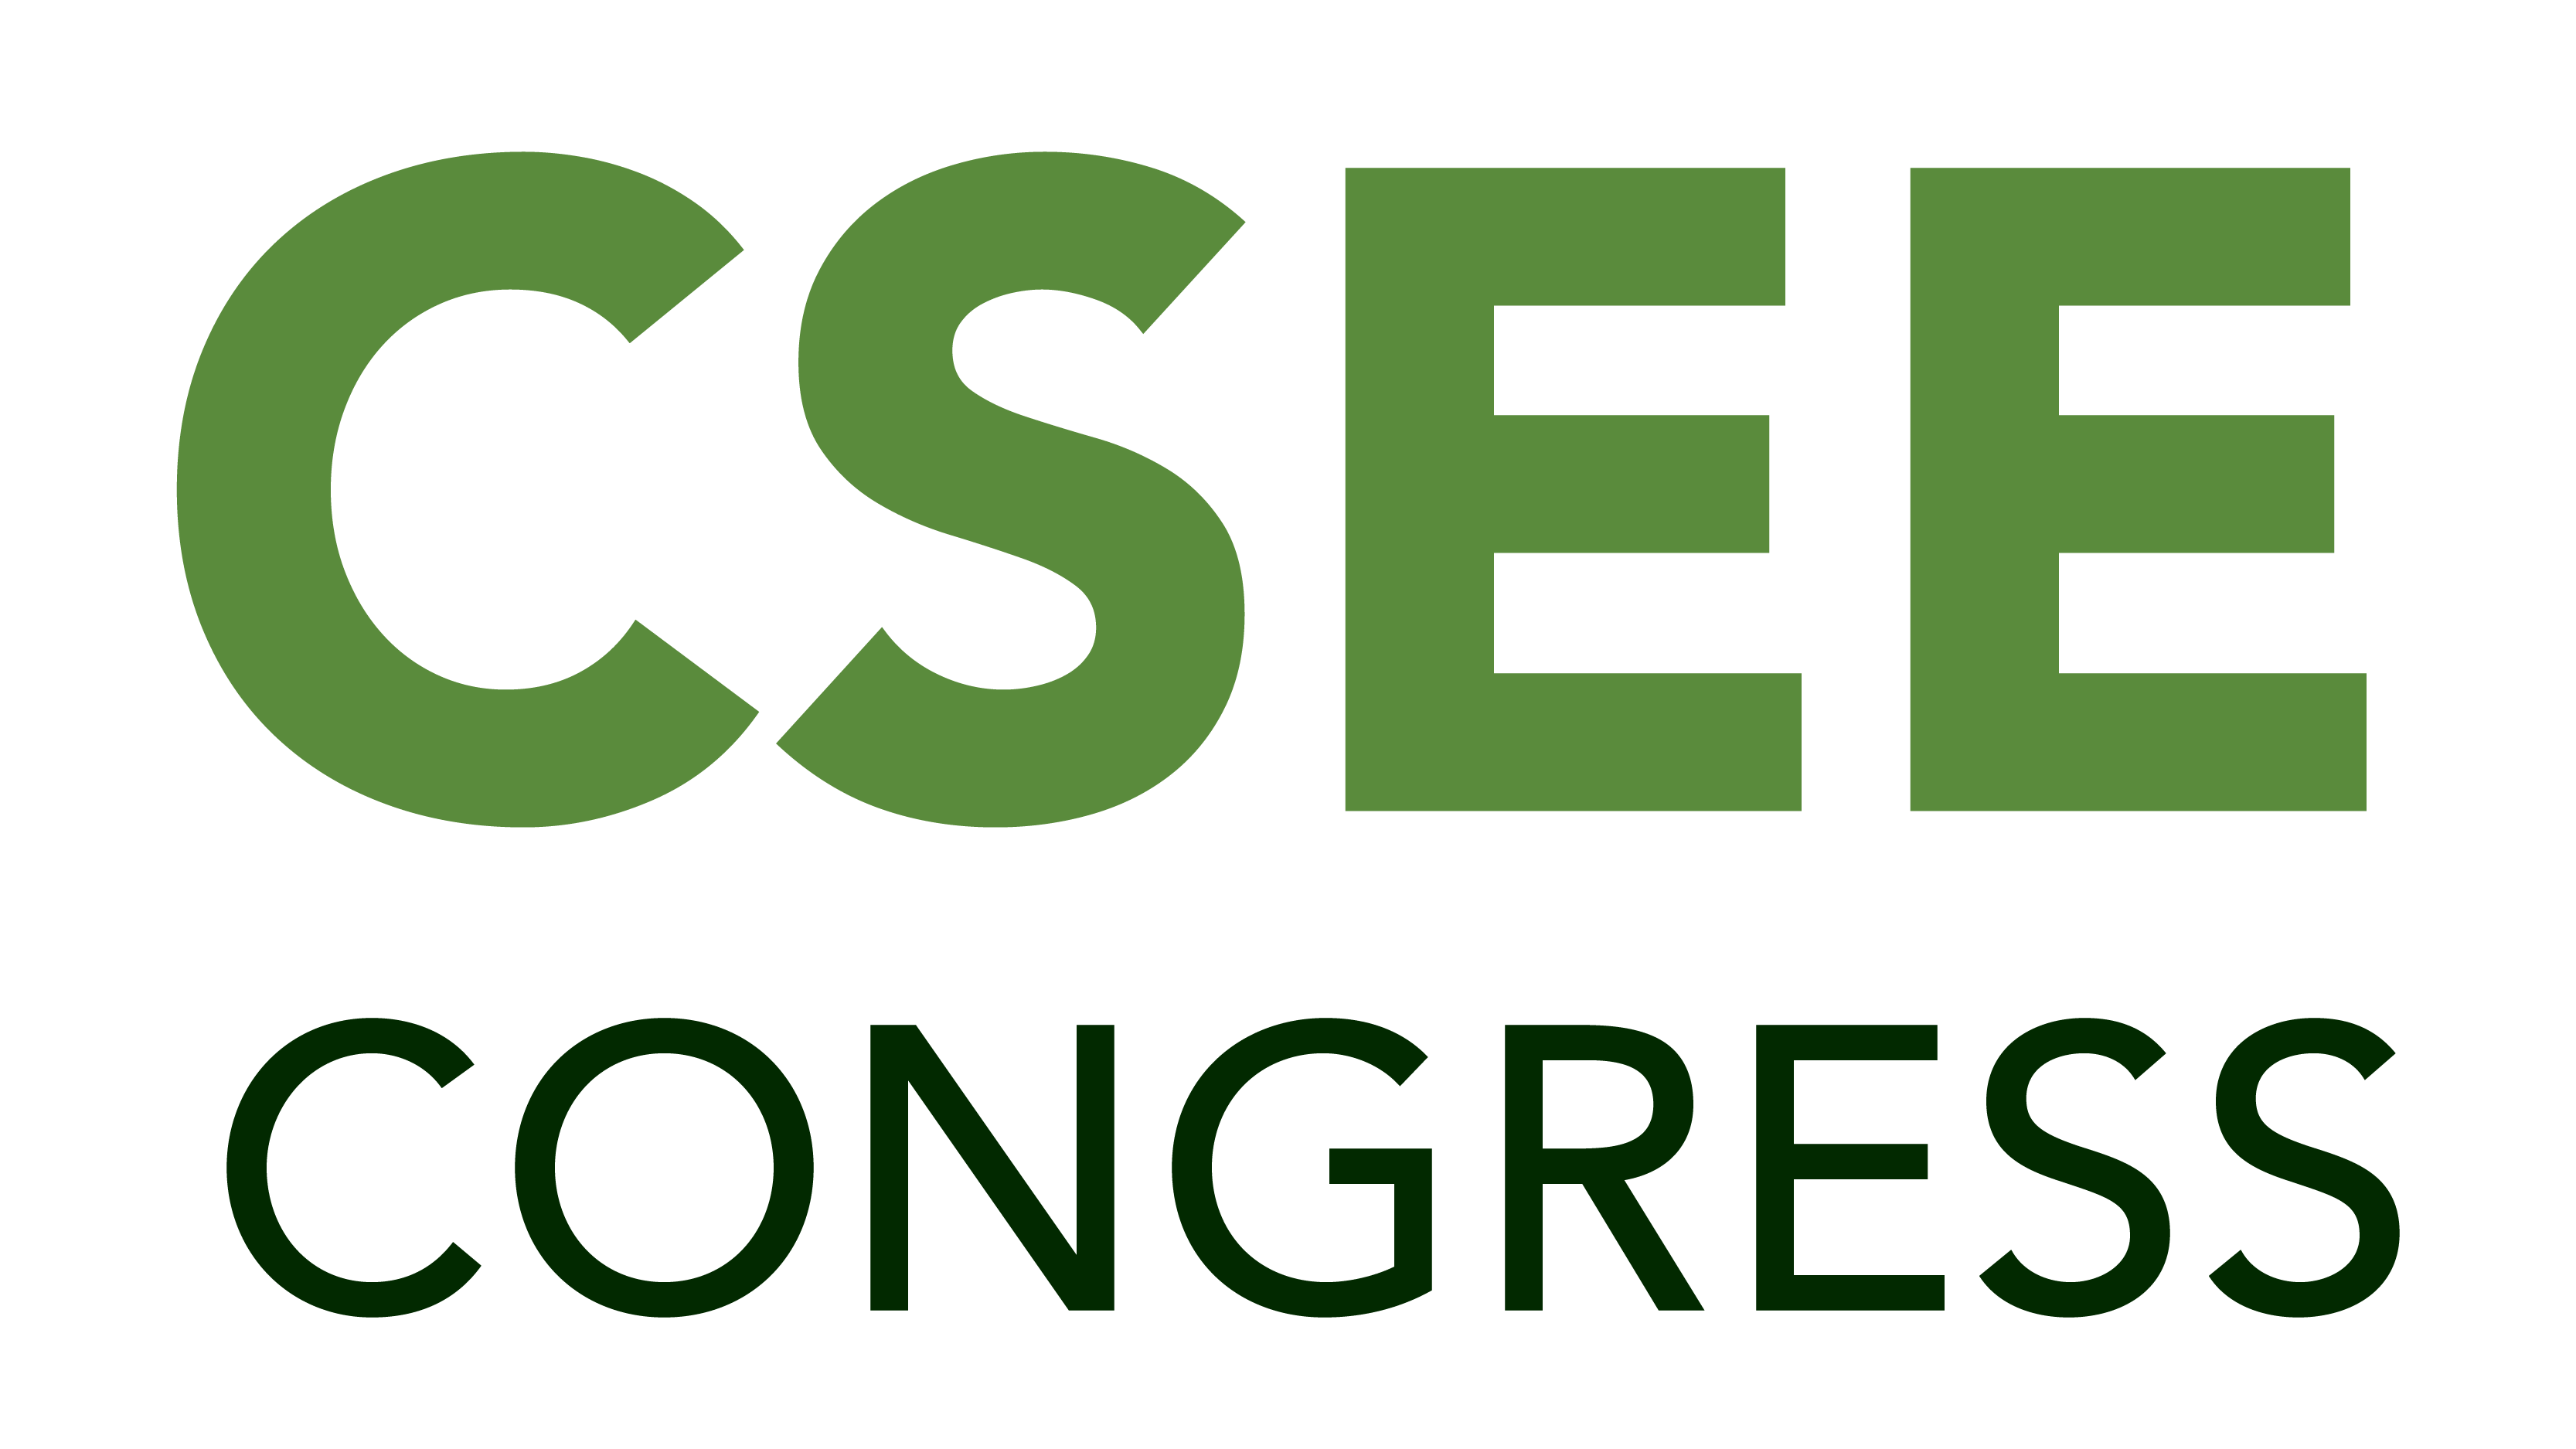 5th World Congress on Civil, Structural, and Environmental Engineering, April, 2020 | Lisbon, Portugal